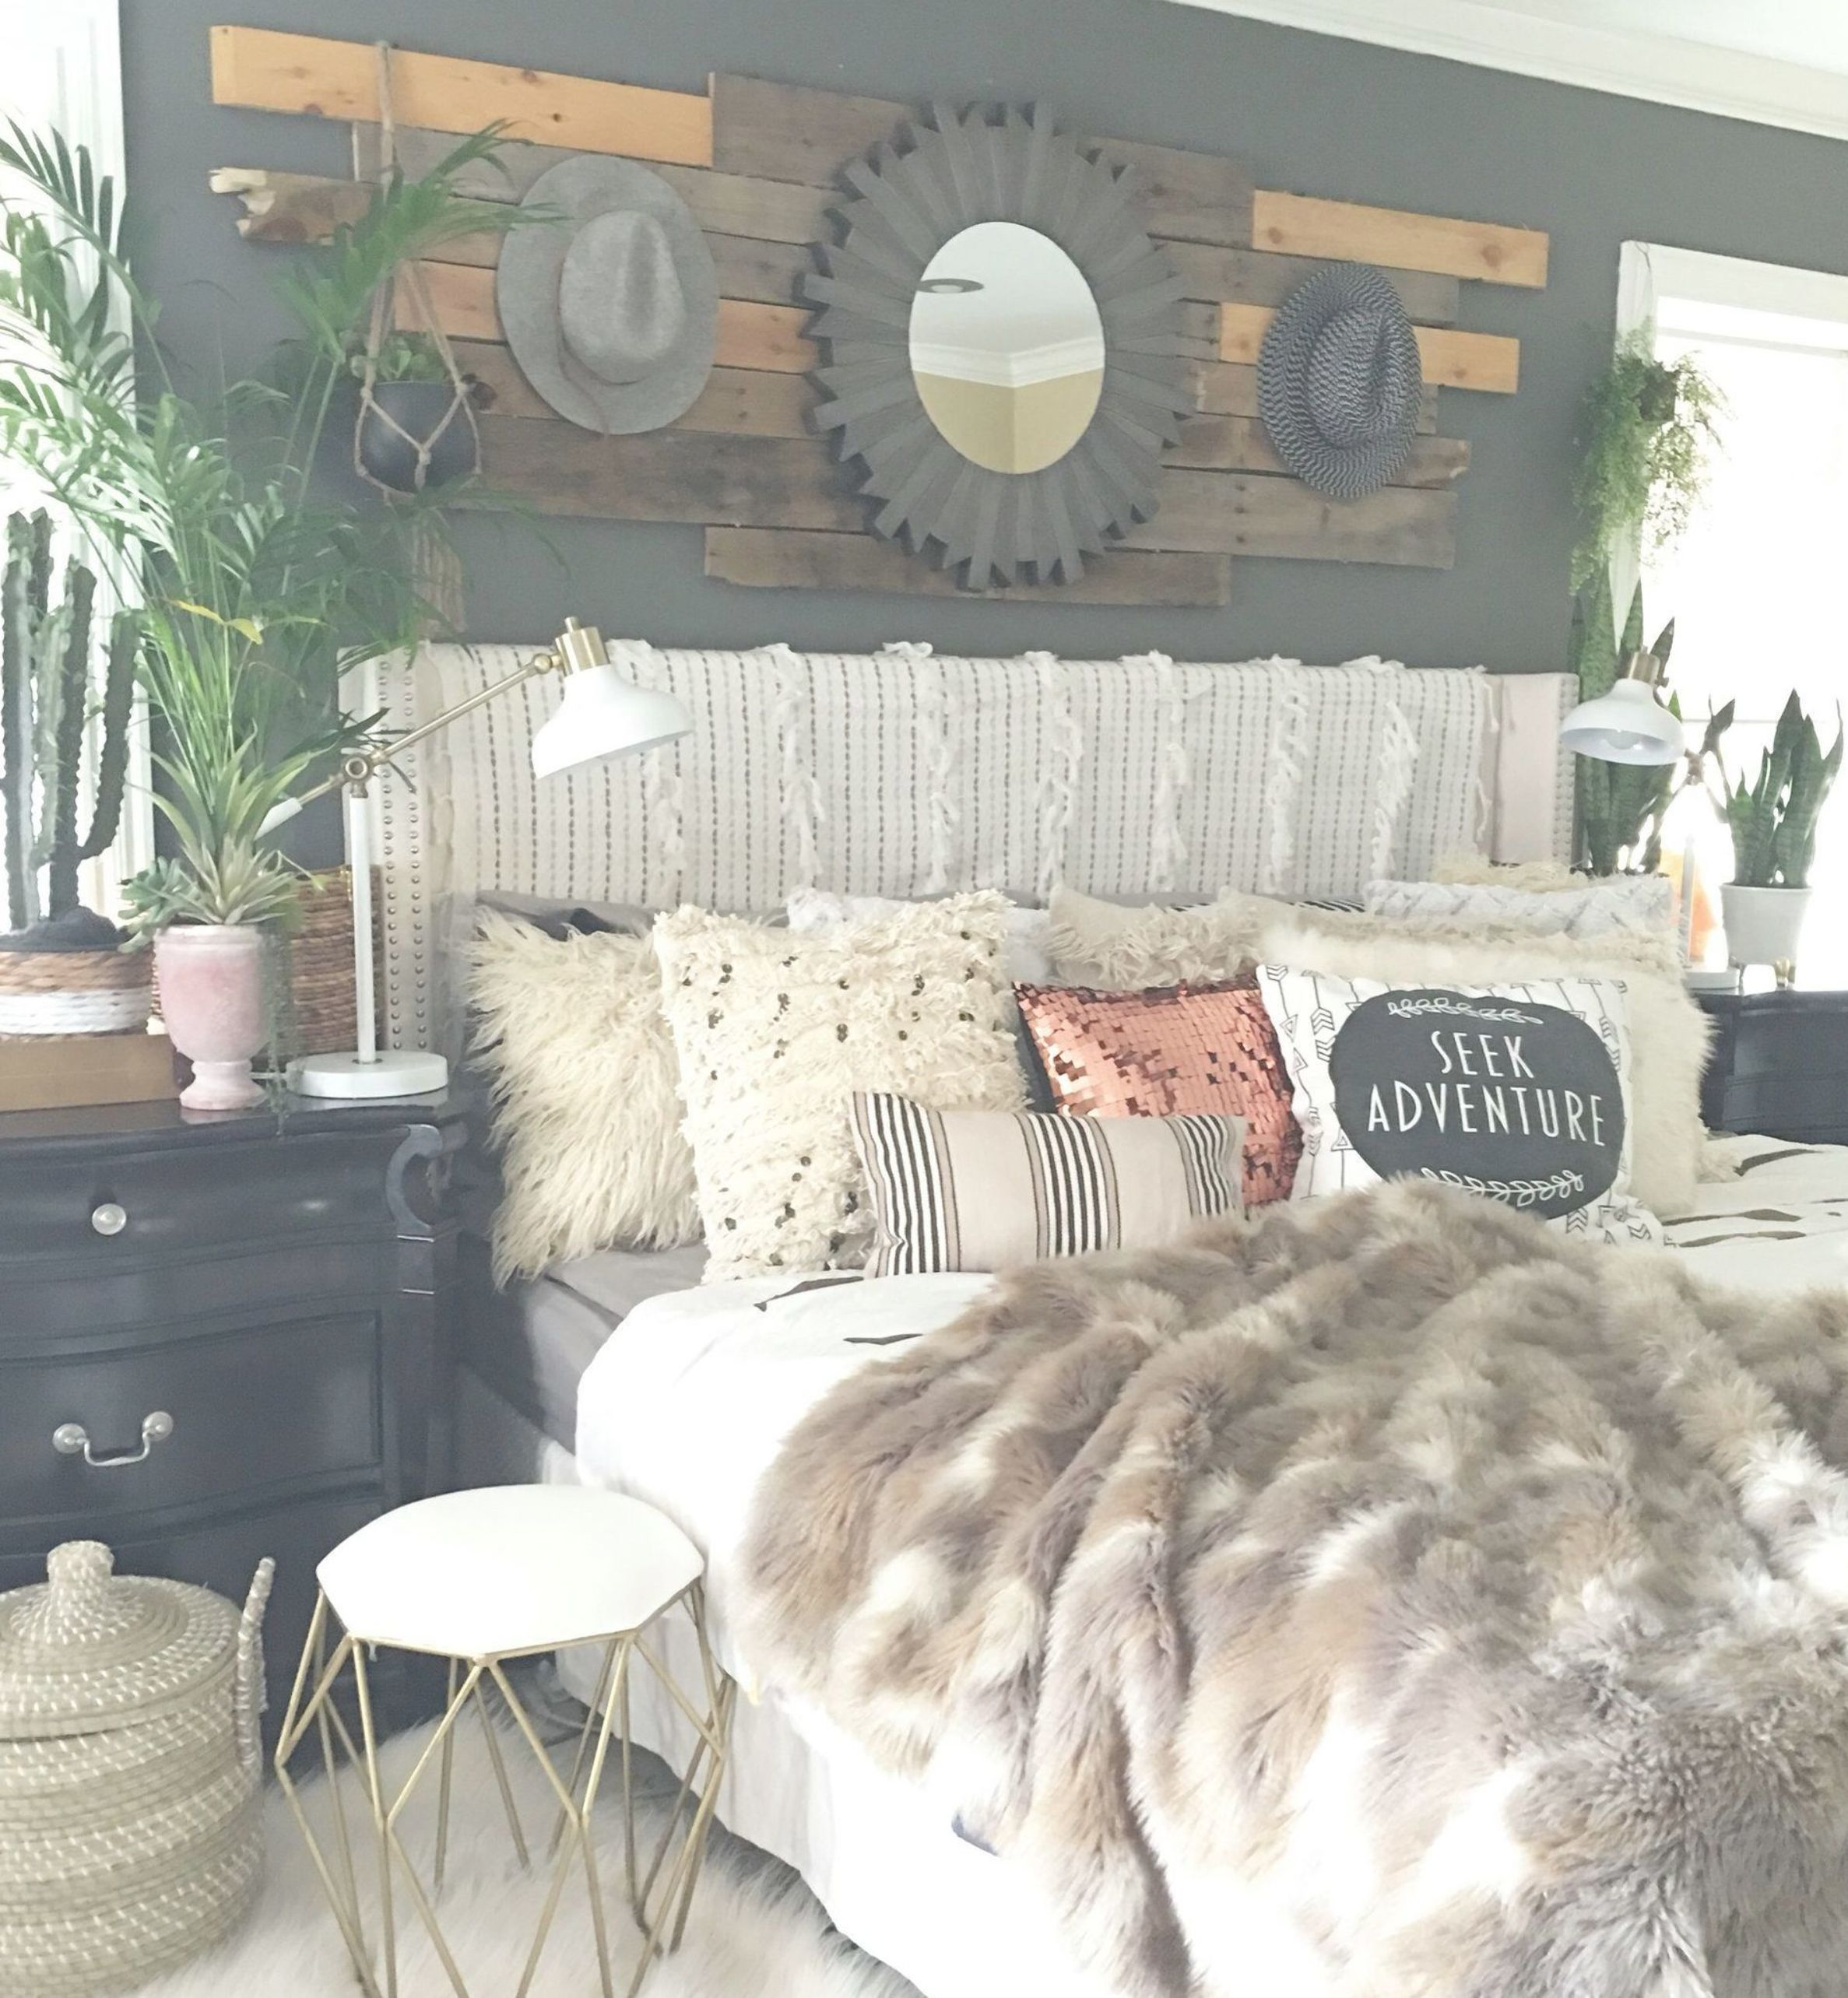 17 Classy Boho Bedroom Classy Boho Bedroom Bedroom Classy Log Wooden Wall Panelling With Bedroom Decor Cozy Guest Bedroom Colors Master Bedroom Decor Romantic